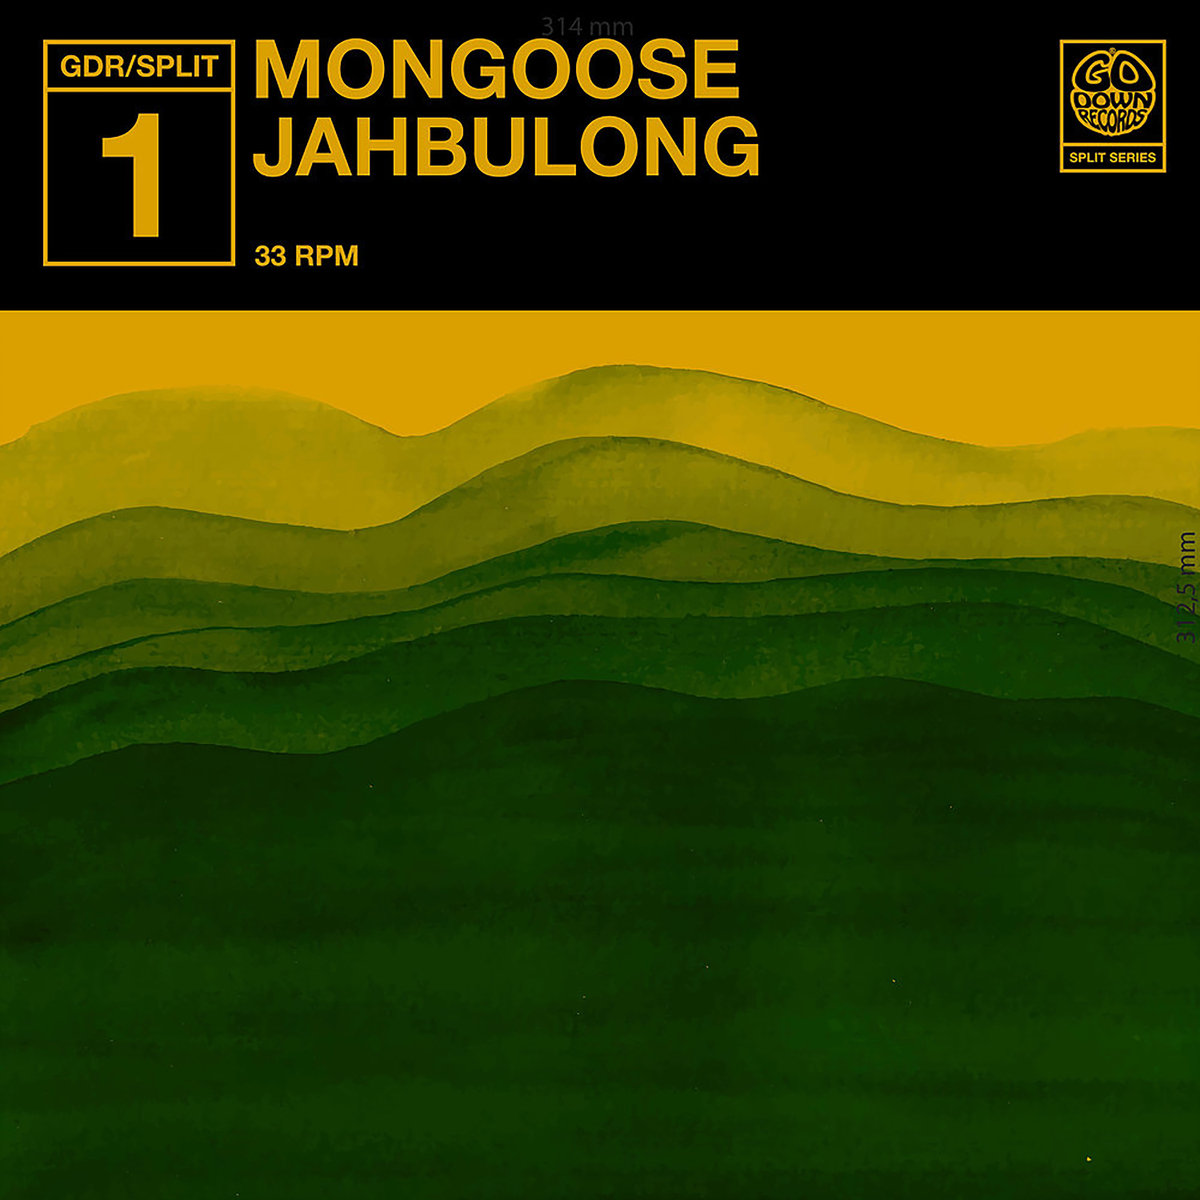 go down records split 1 mongoose jahbulong